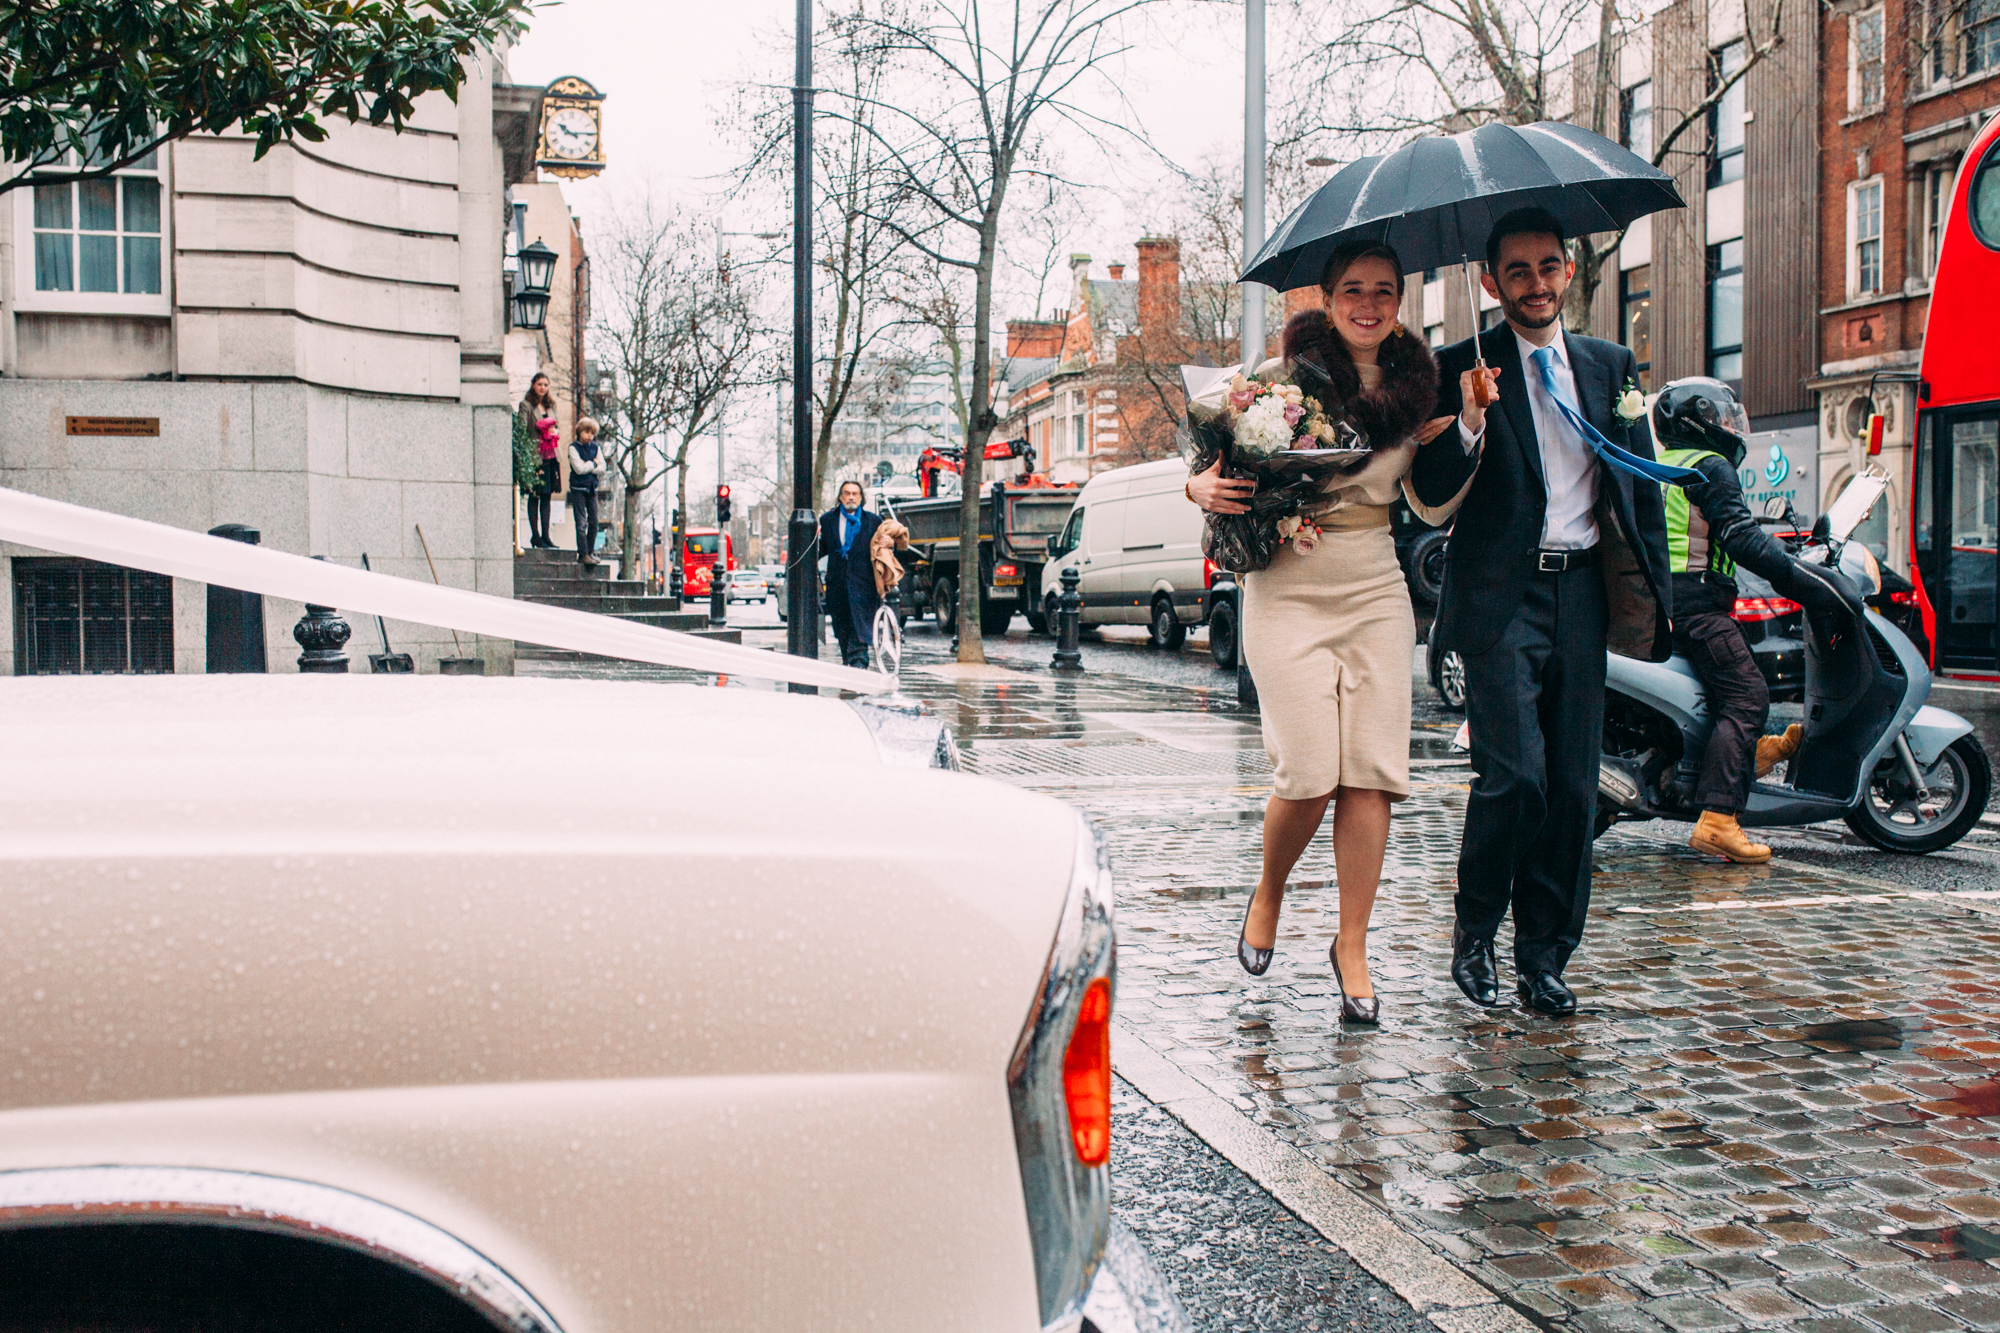 London Documentary wedding photographer